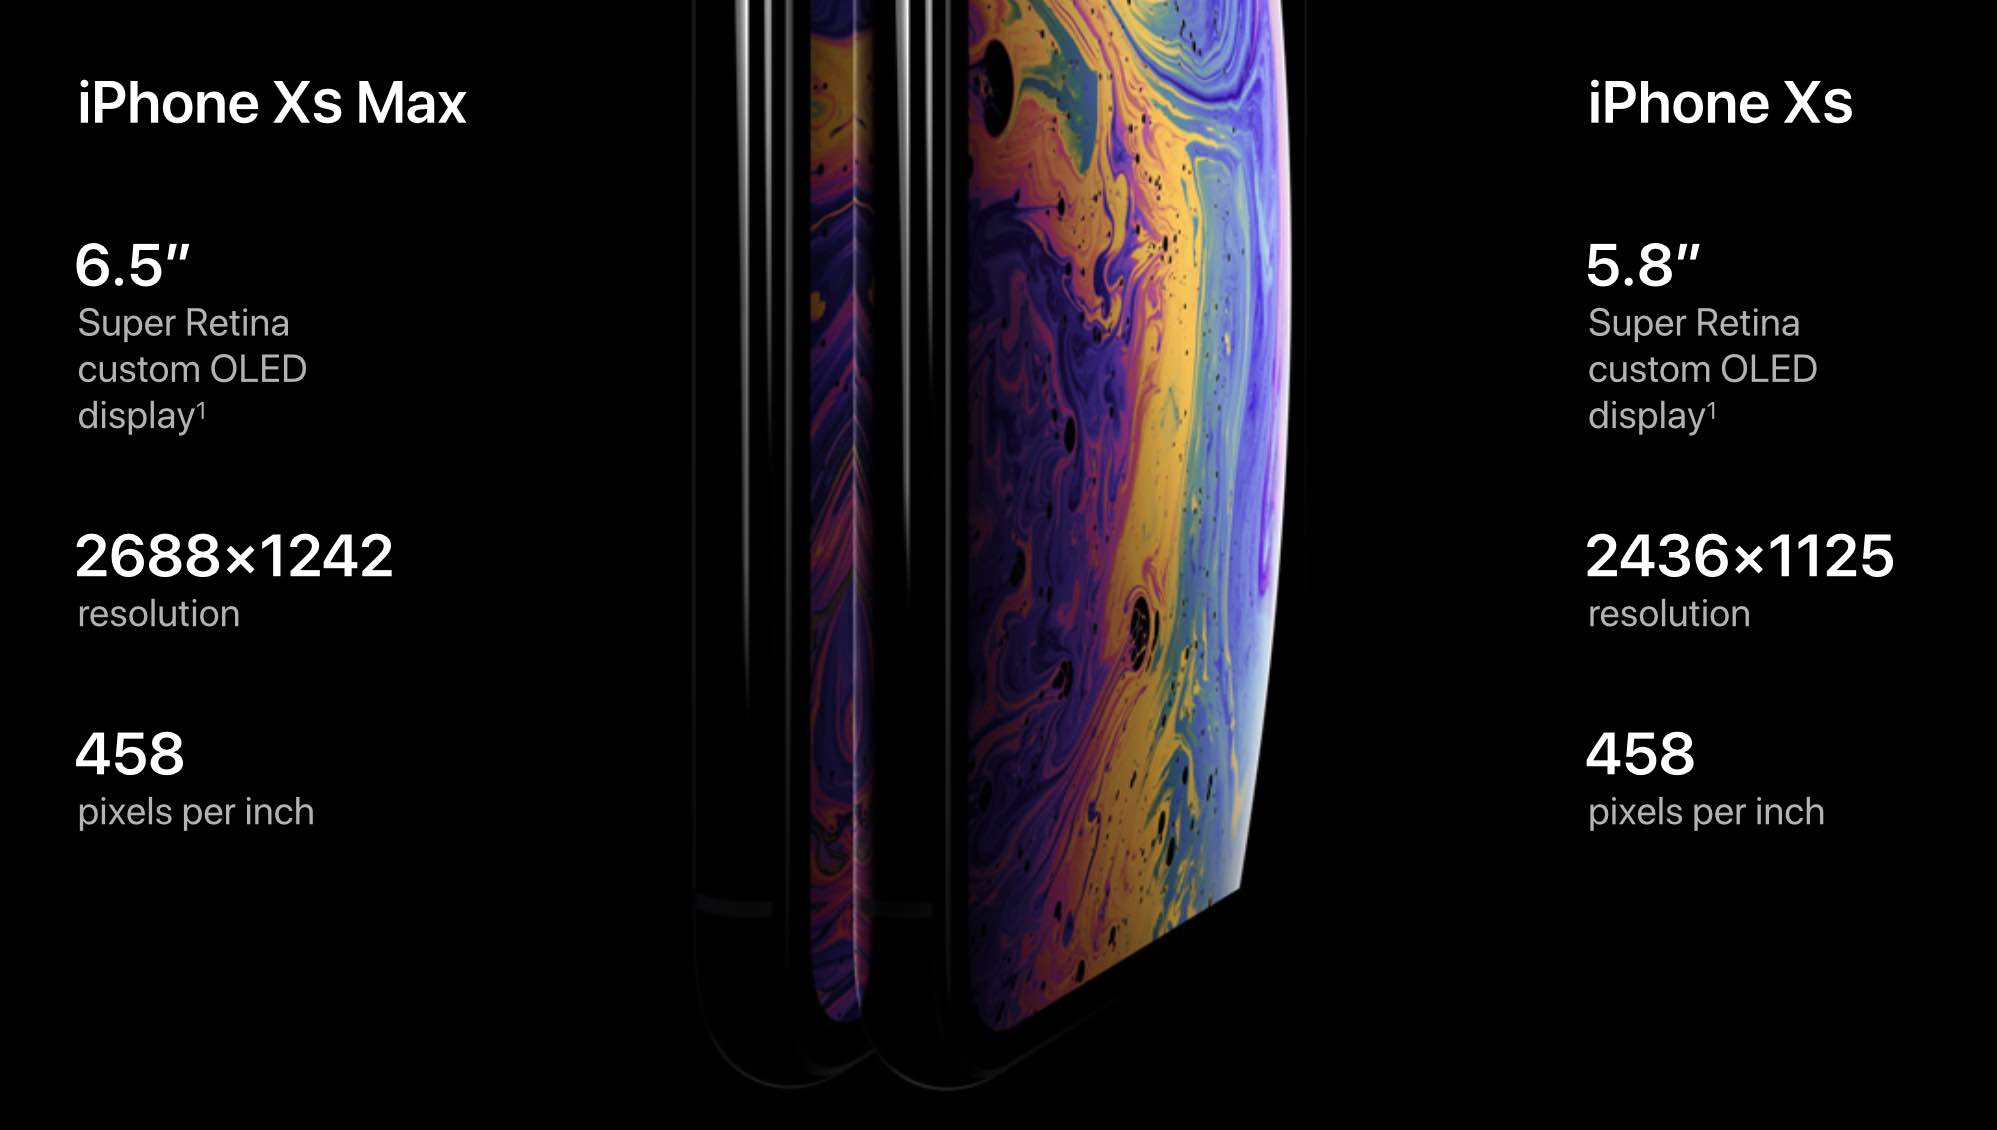 new concept e2f05 c051a iPhone XS Max's OLED screen has some notable improvements over the ...